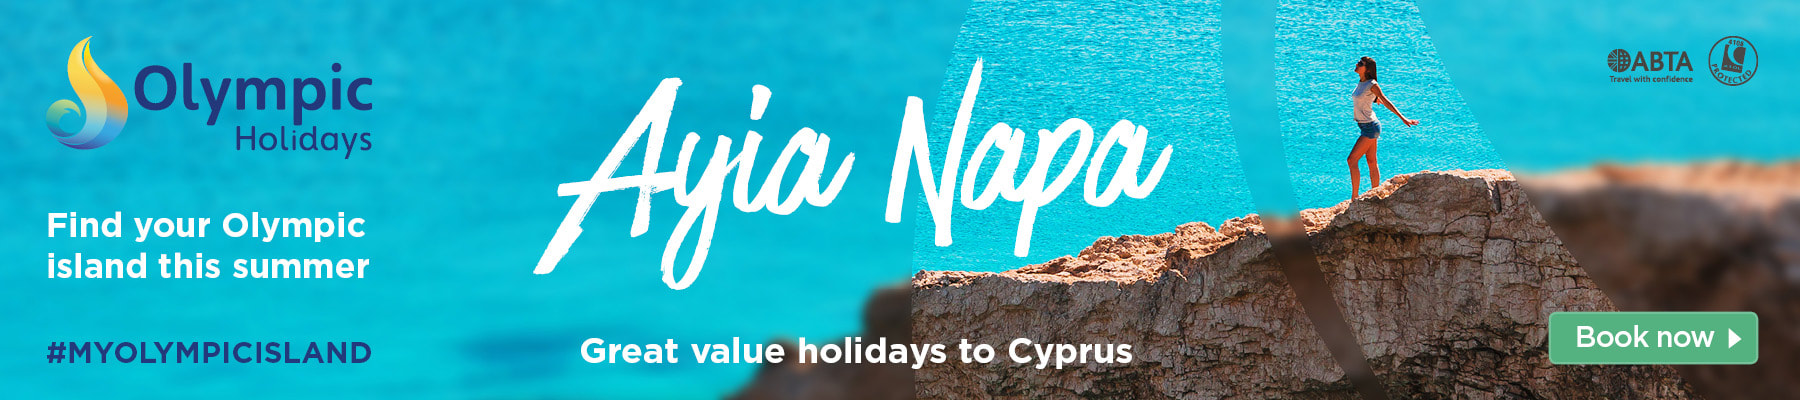 ayia napa events line up 2018